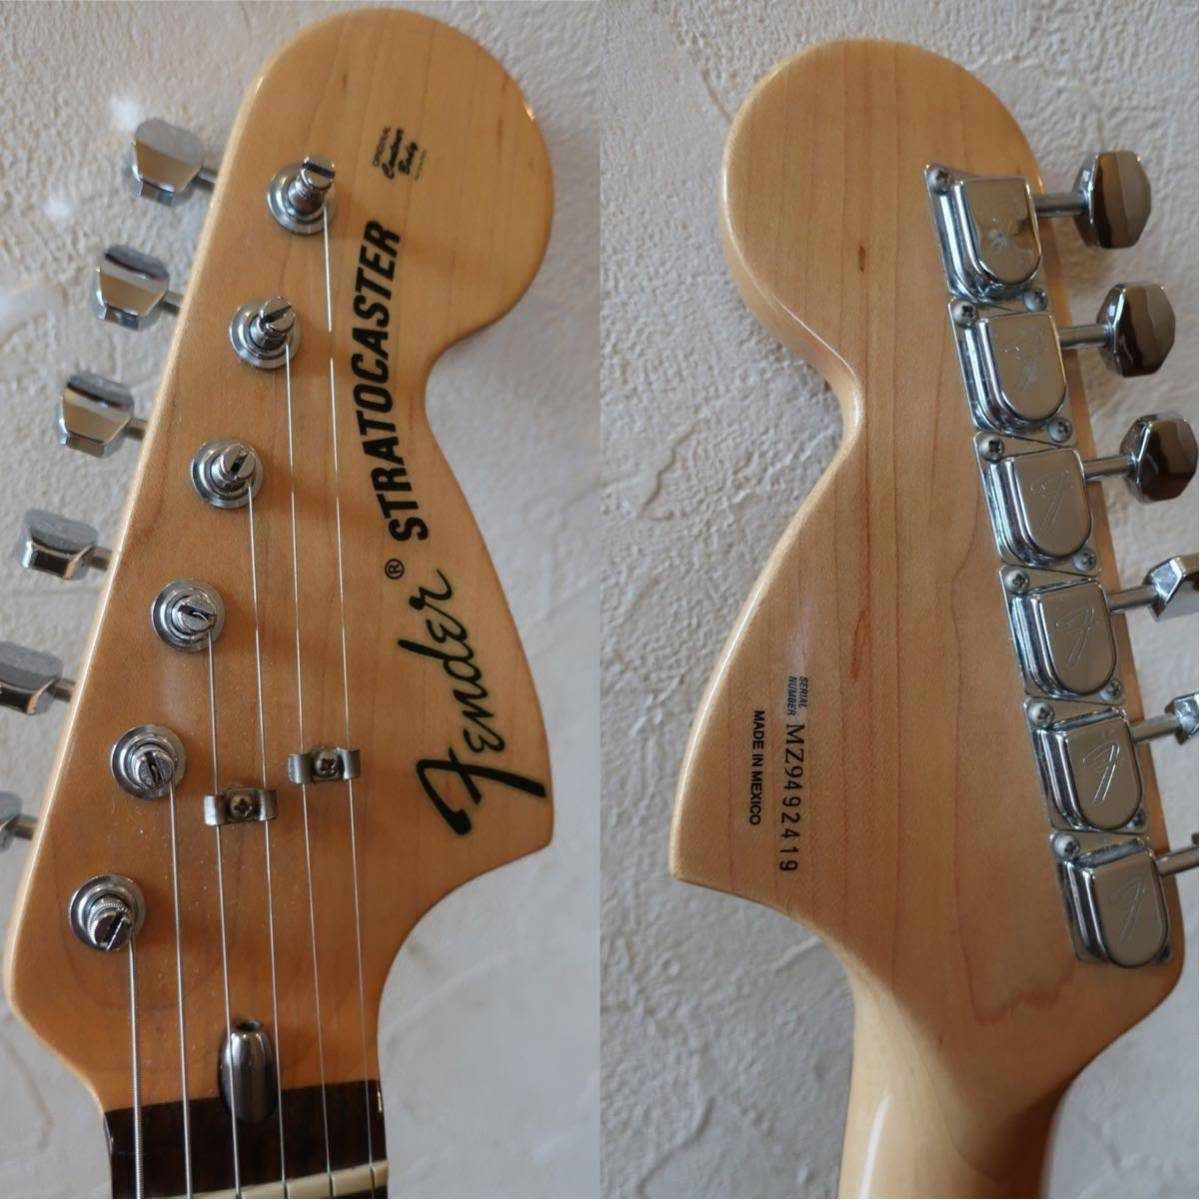 【RELIC】Fender Mexico Classic 70s Stratocaster 3CS/R 手巻きVooDooピックアップ +EMERSON CUSTOM ヴィンテージハードケース付き_画像4